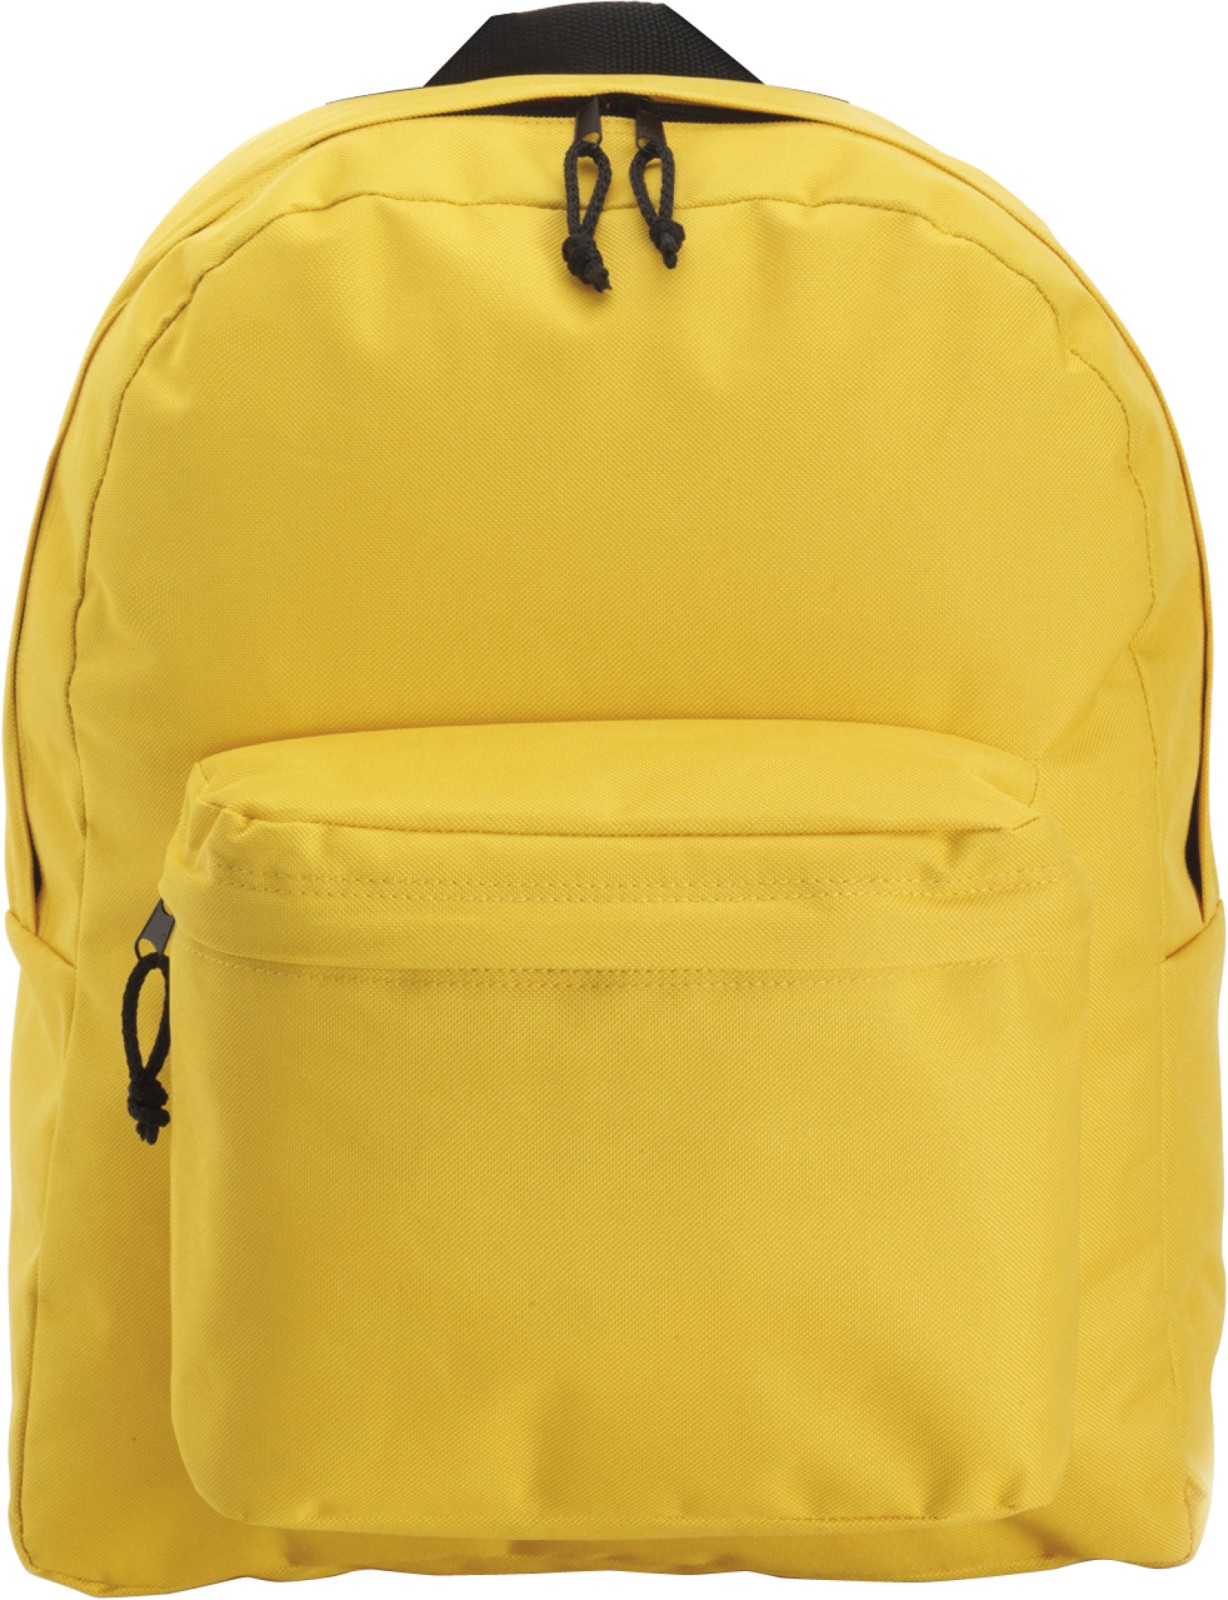 Polyester (600D) backpack - Yellow